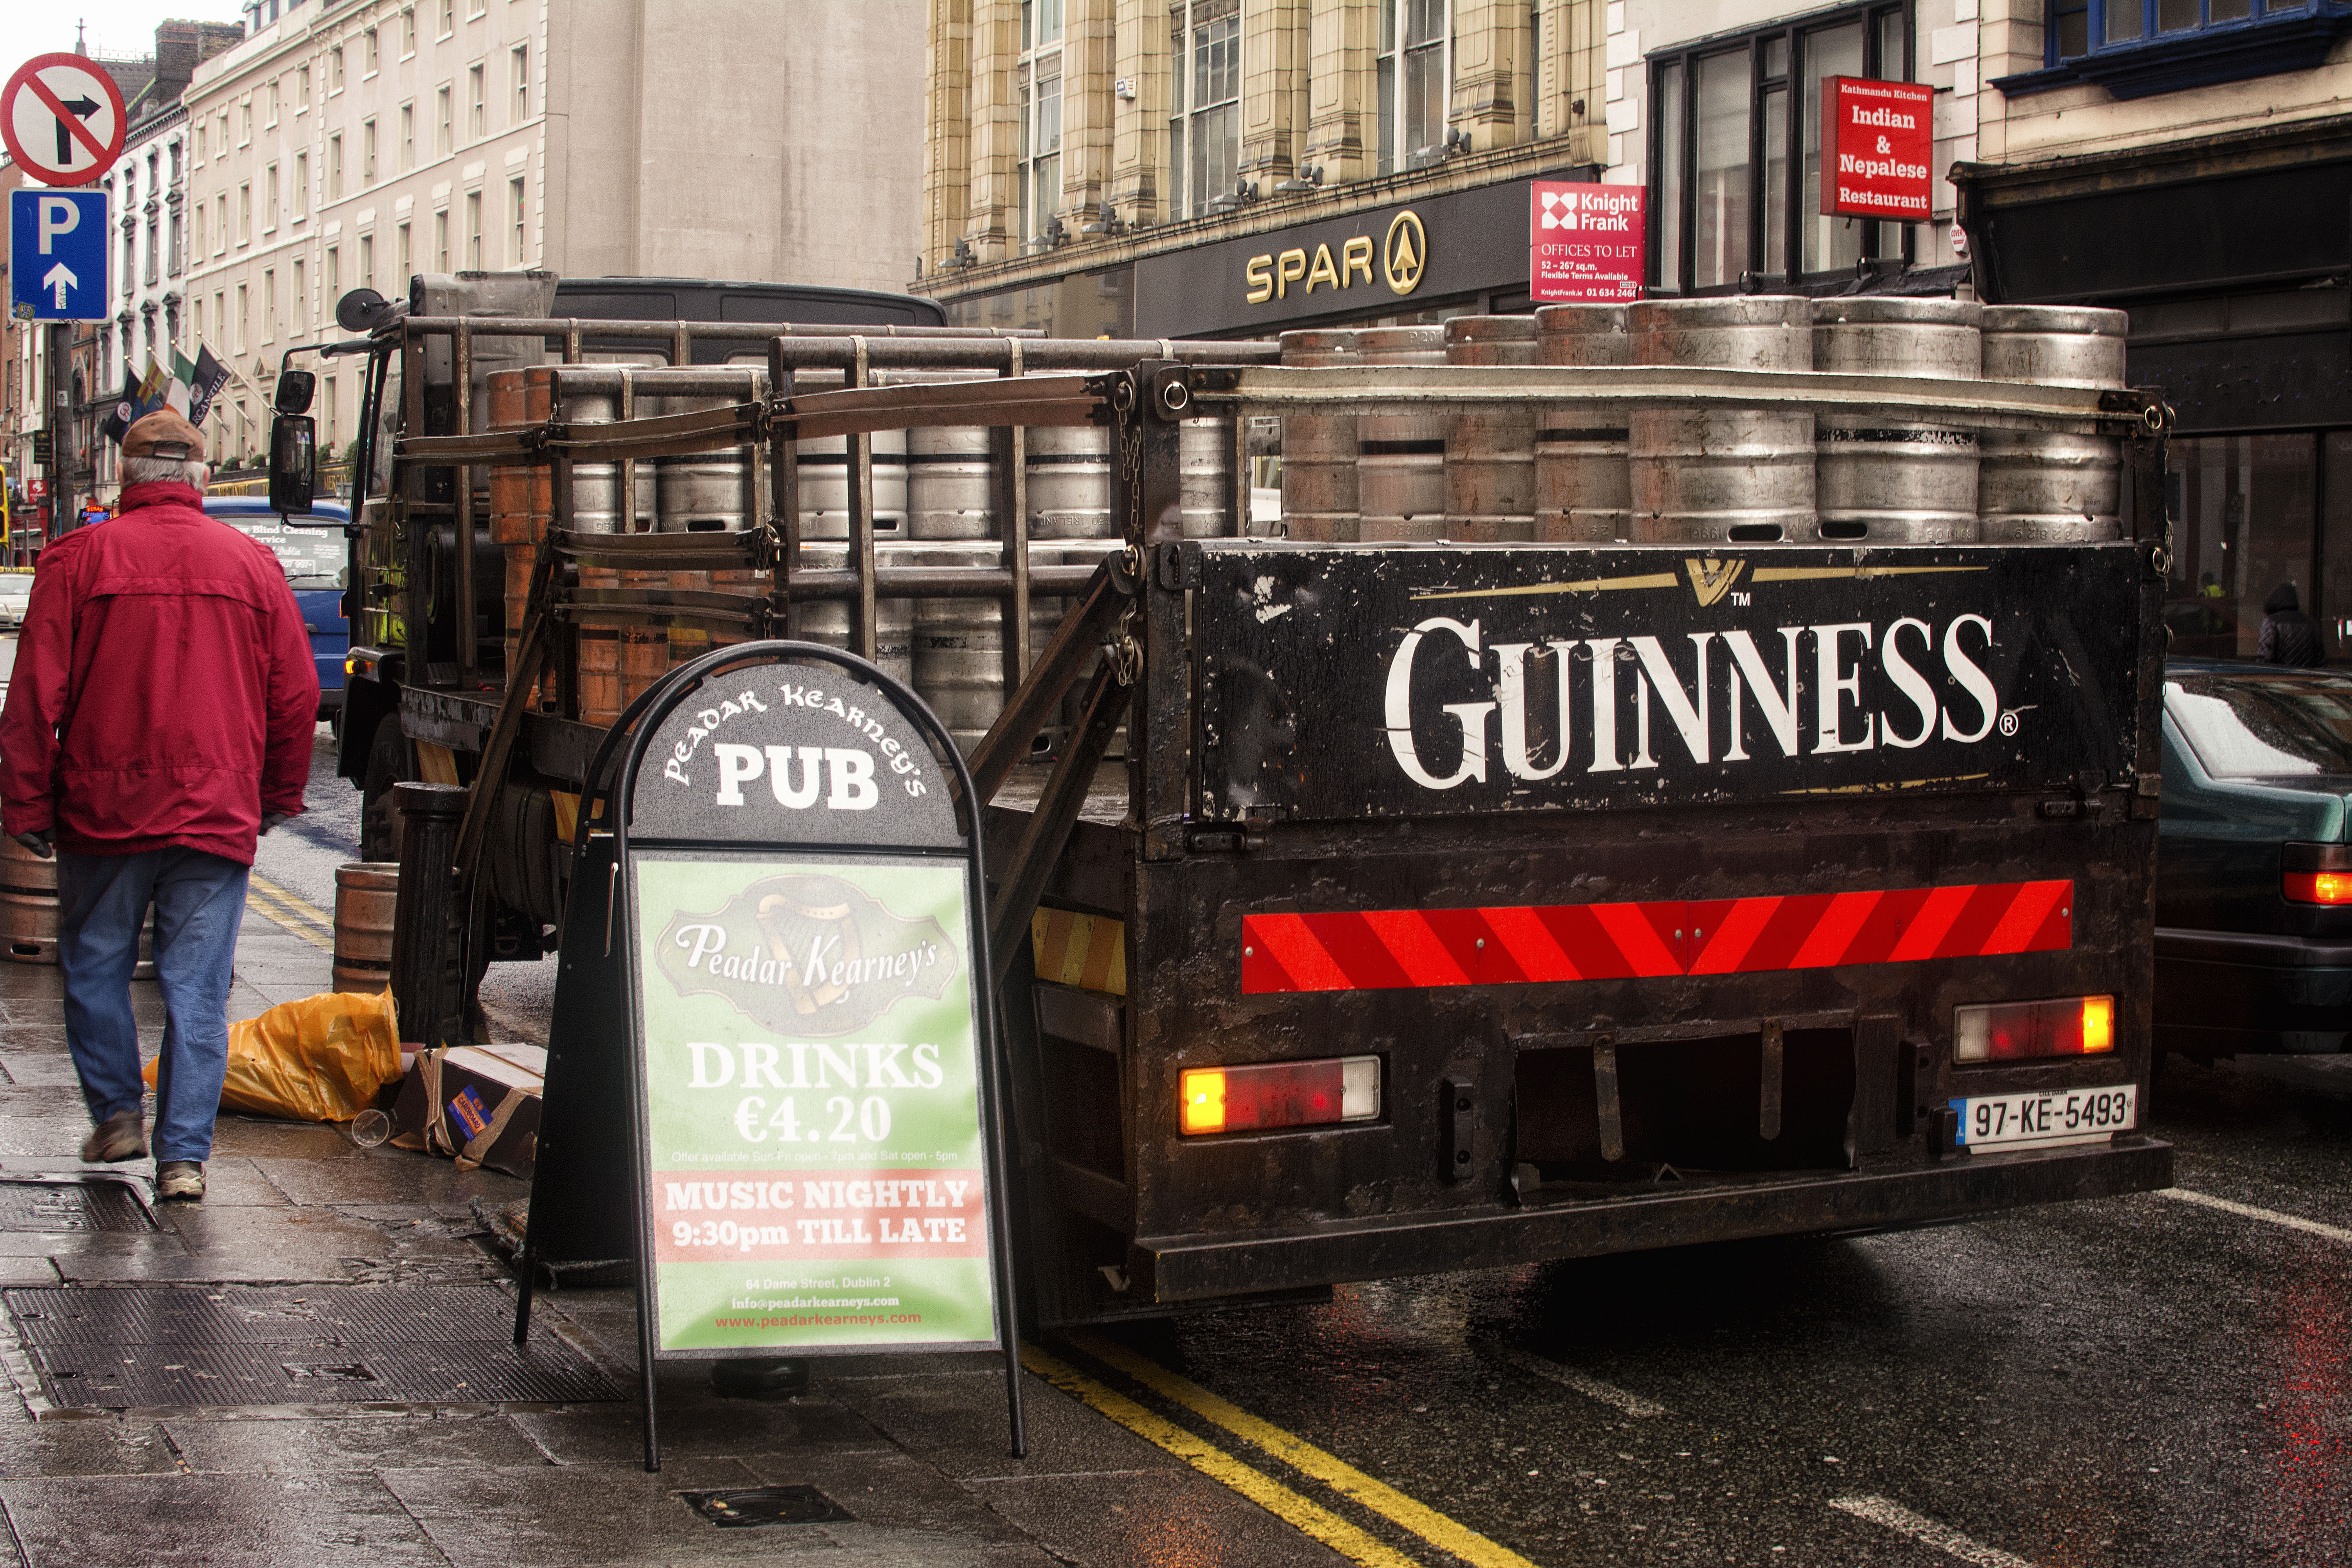 Guinness delivery truck